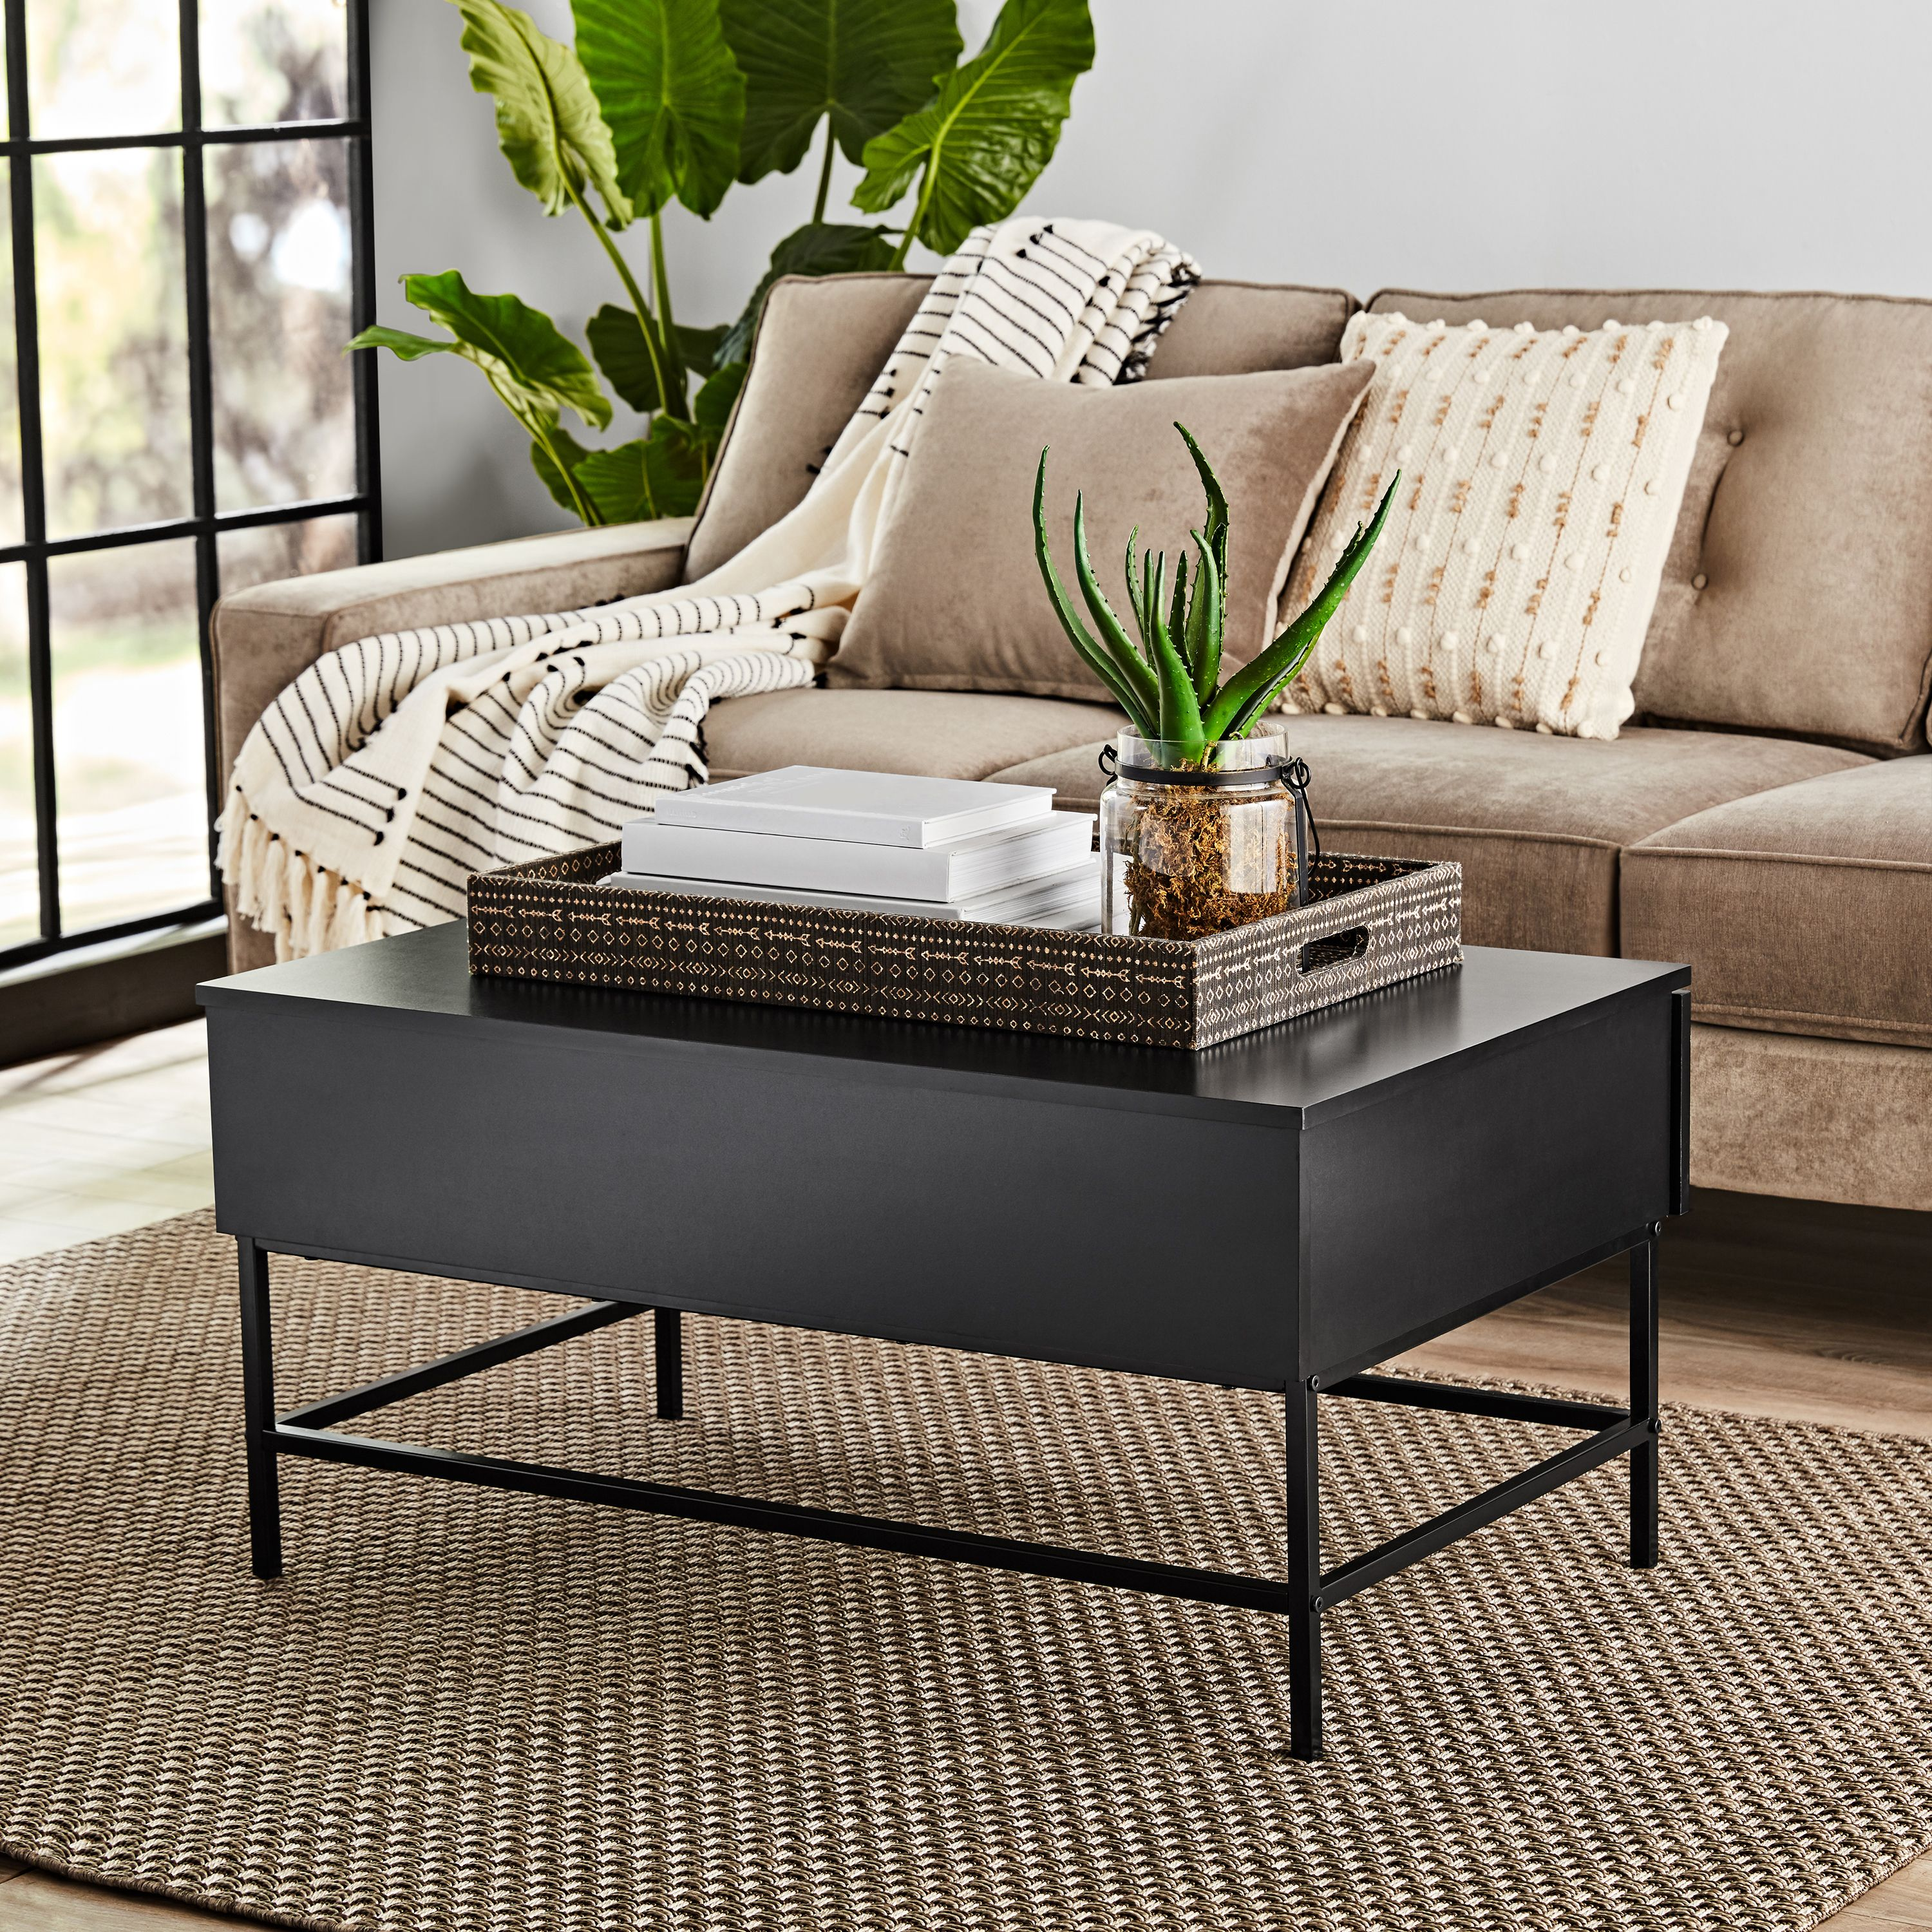 MAINSTAYS SUMPTER PARK COFFEE TABLE, MULTIPLE COLORS